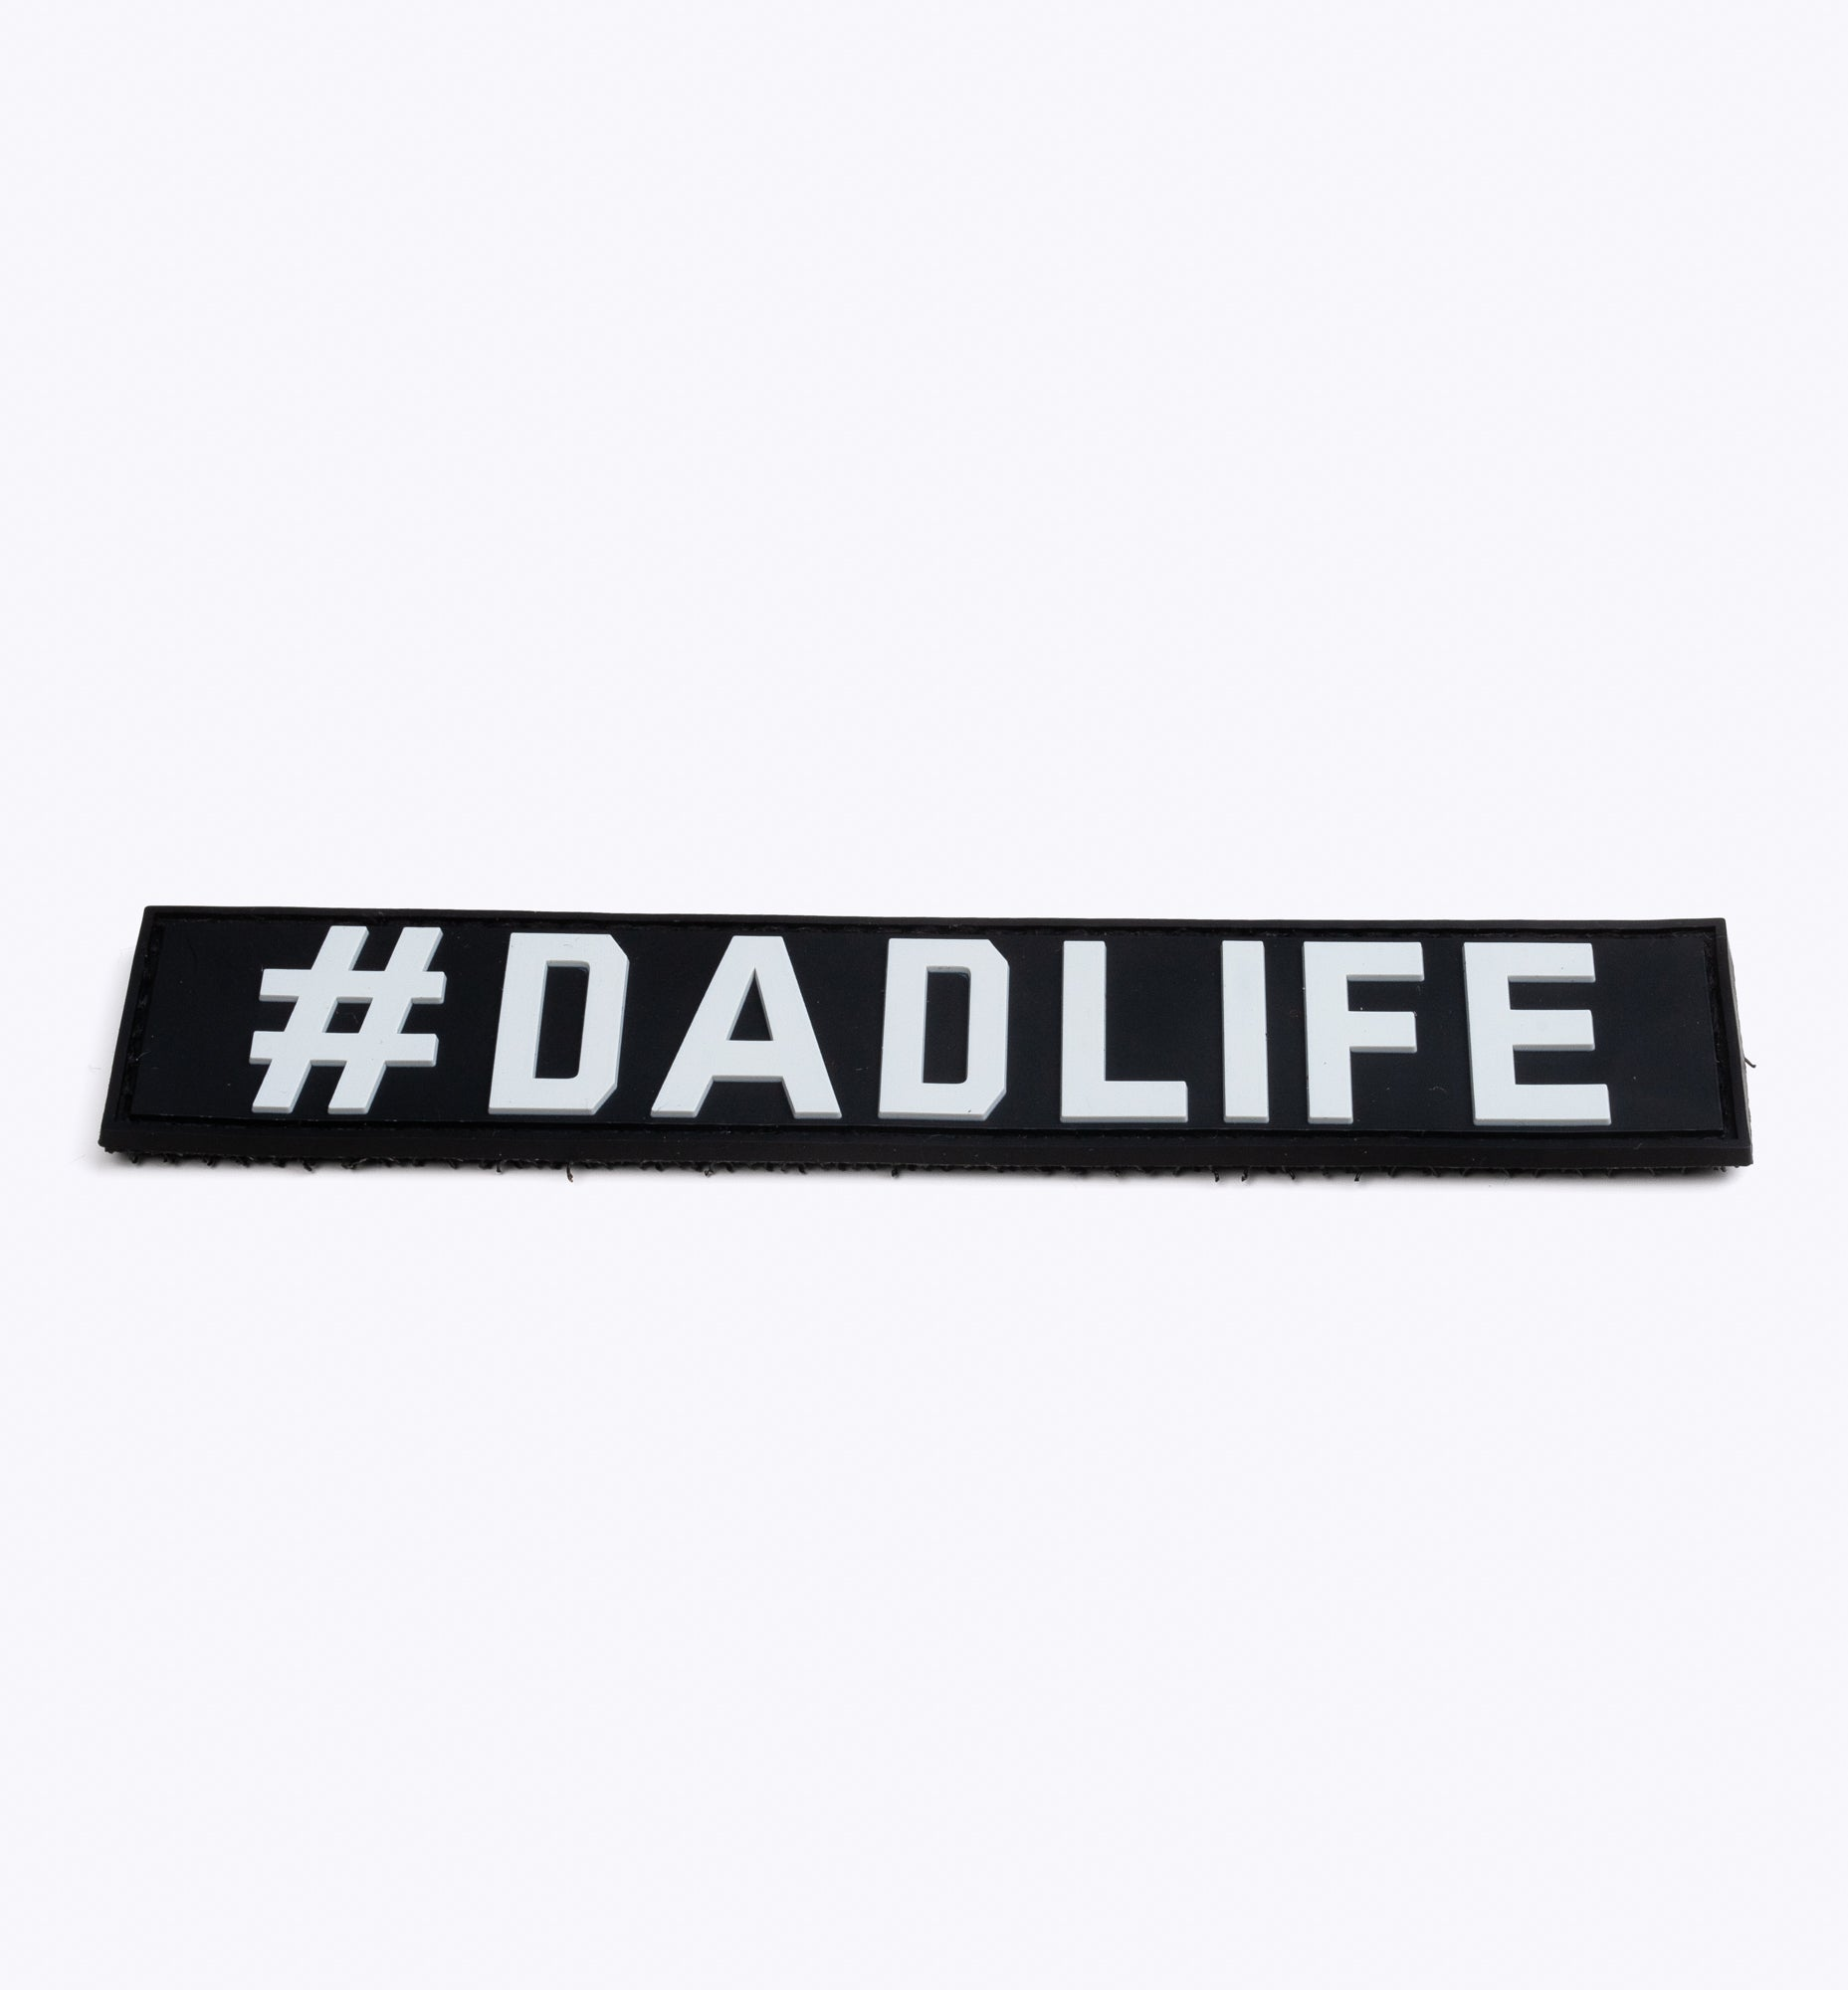 '#DADLIFE' PVC Patch